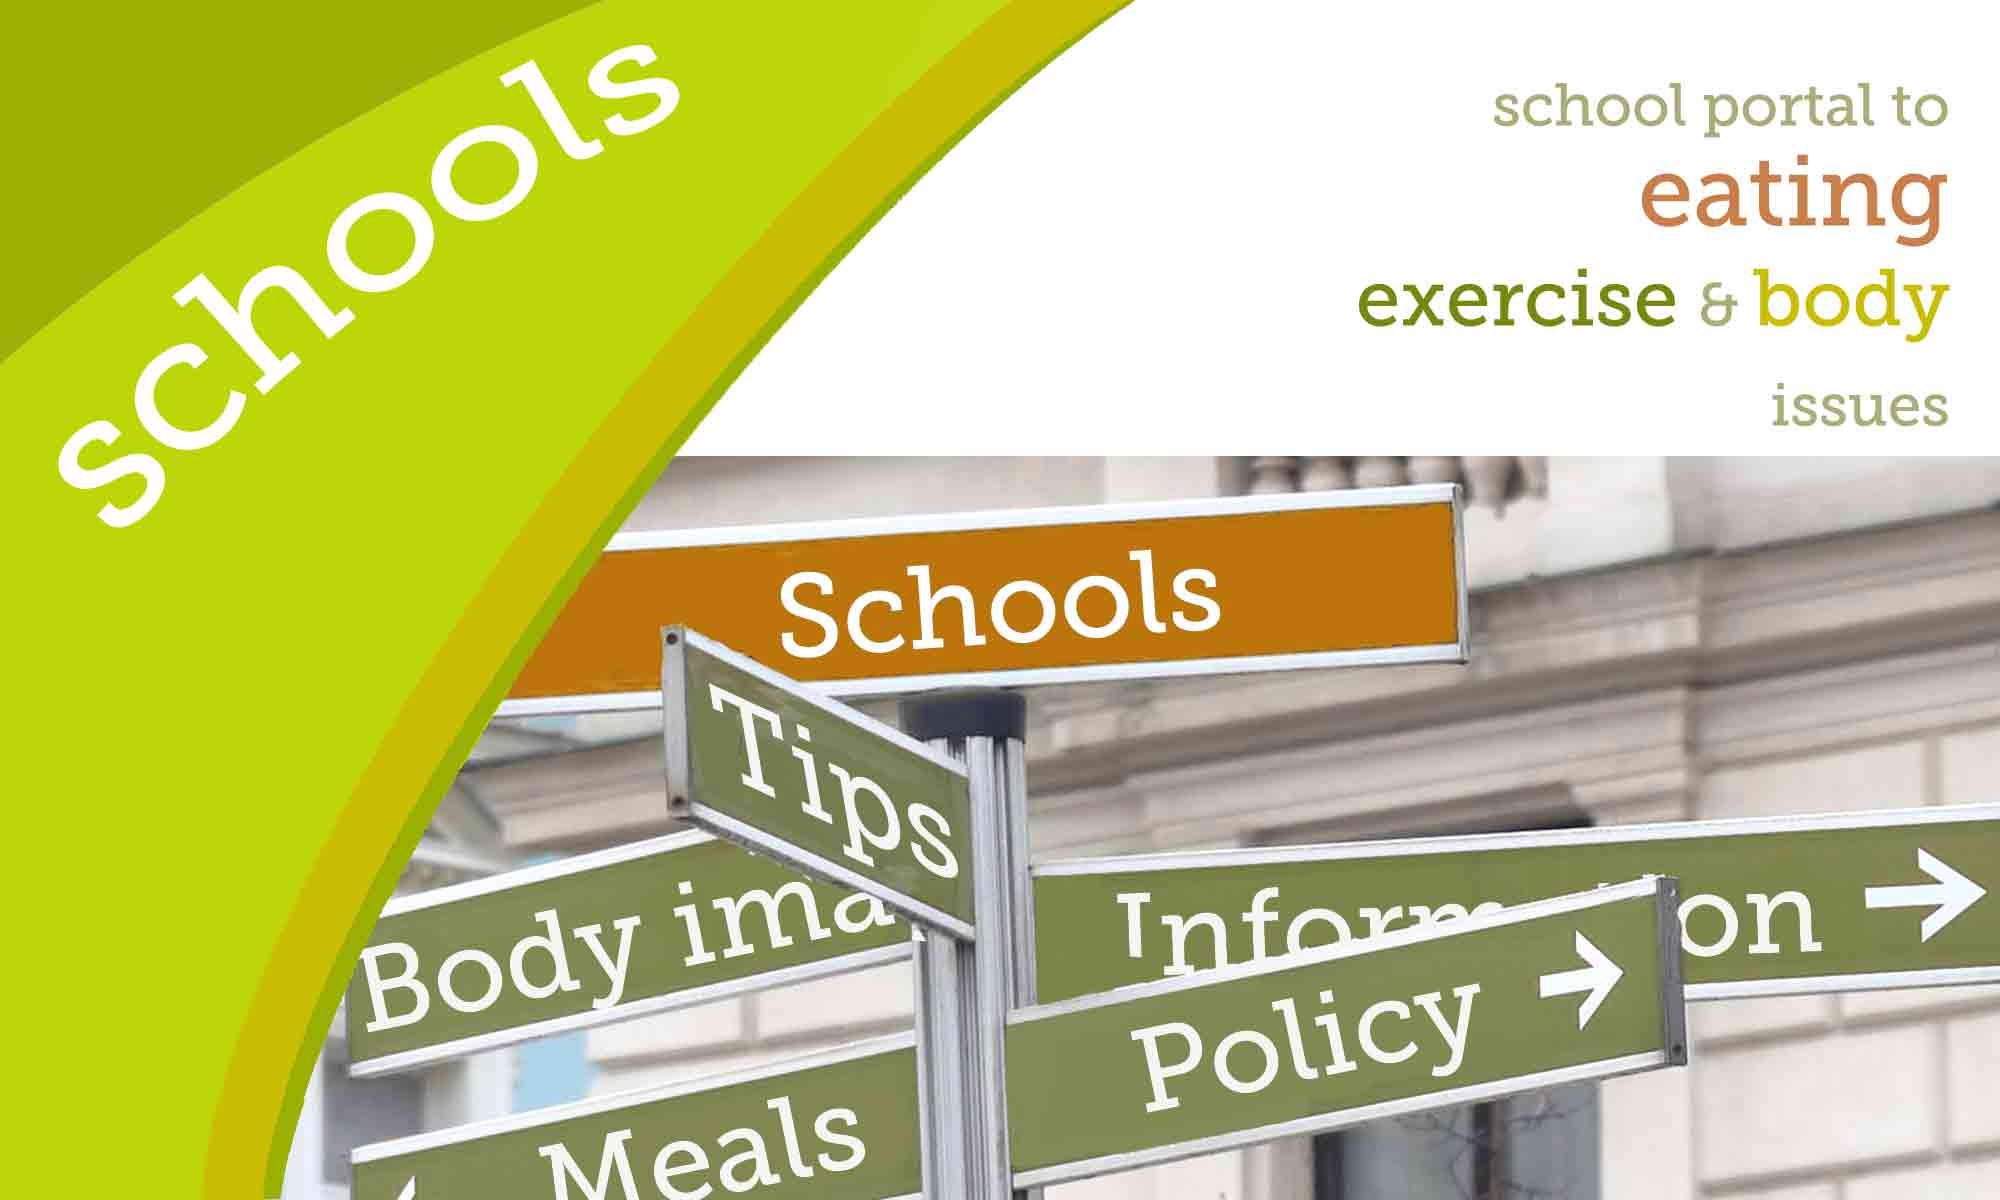 Eating Disorders Policy And Guidance For Schools All The Resources